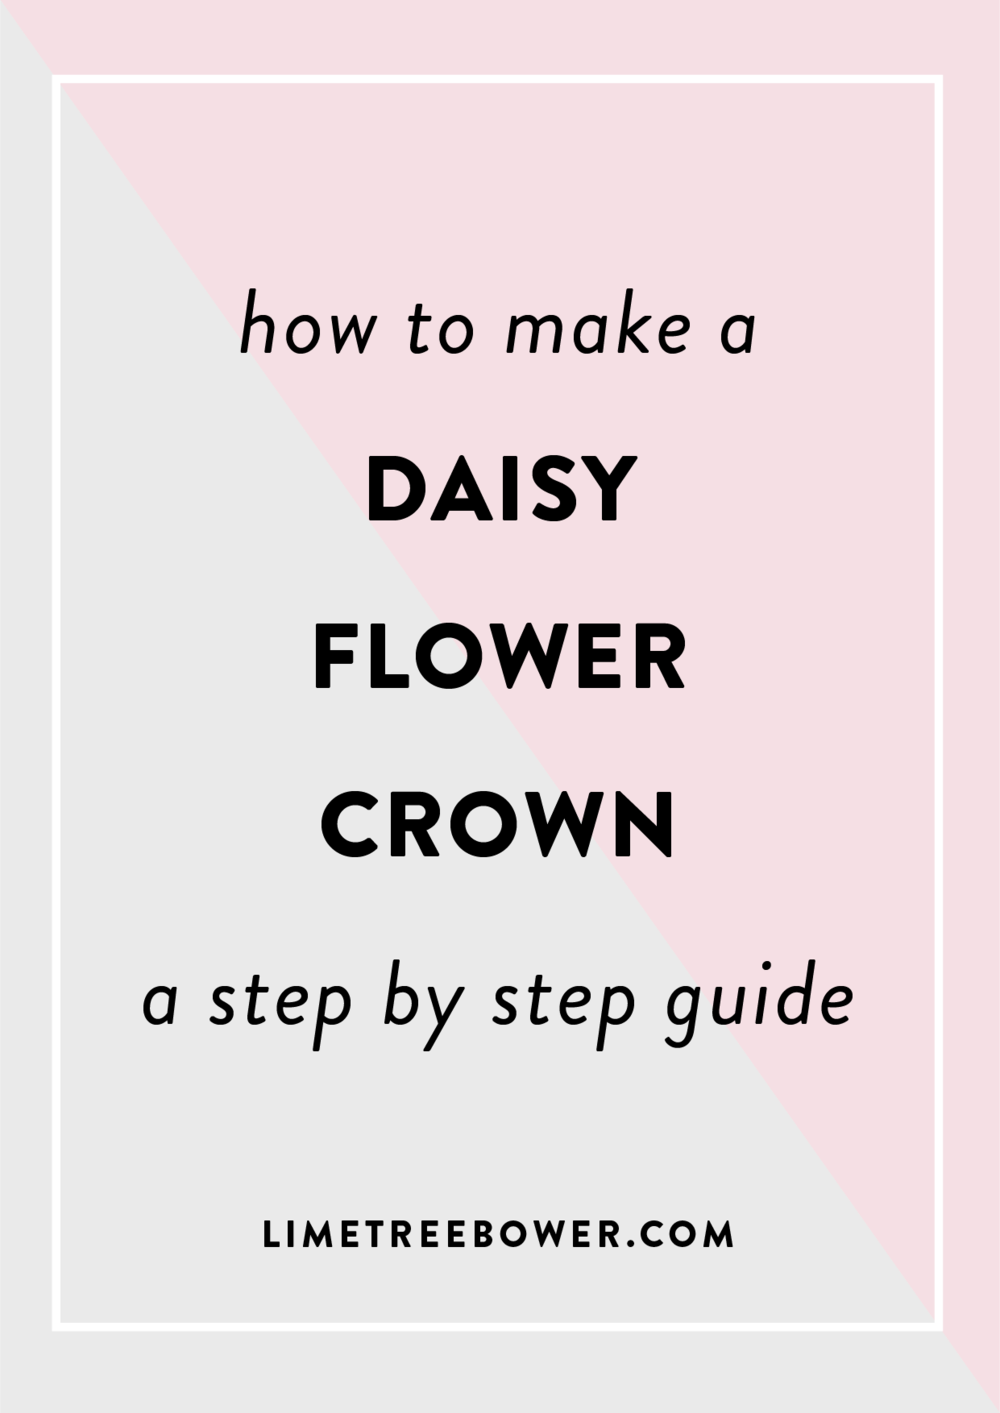 Daisy-Flower-Crown-02.png